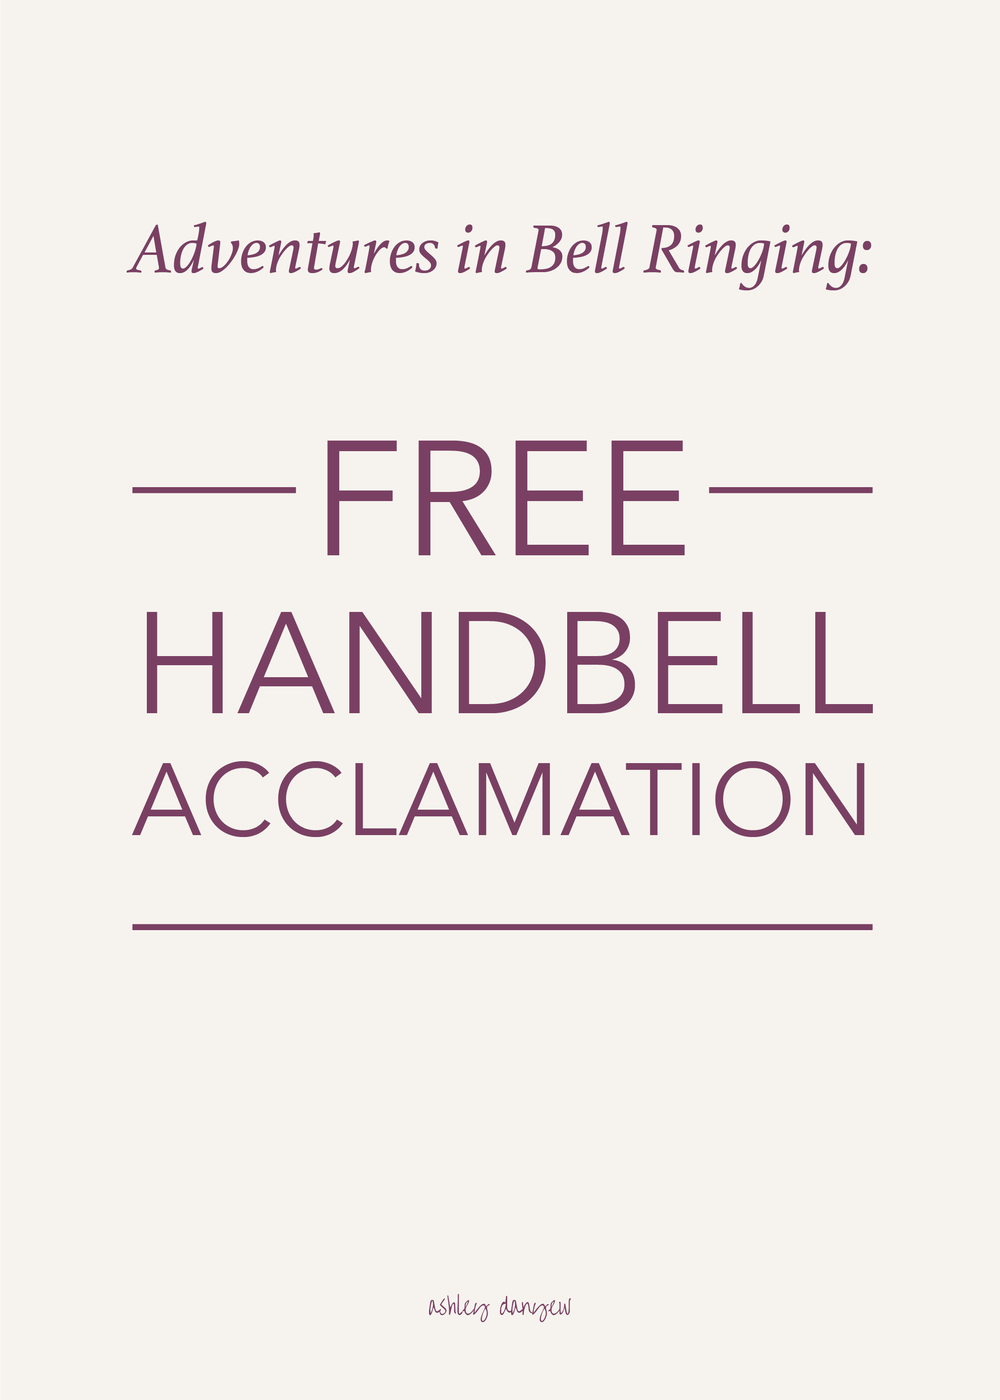 Copy of Adventures in Bell Ringing - Free Handbell Acclamation